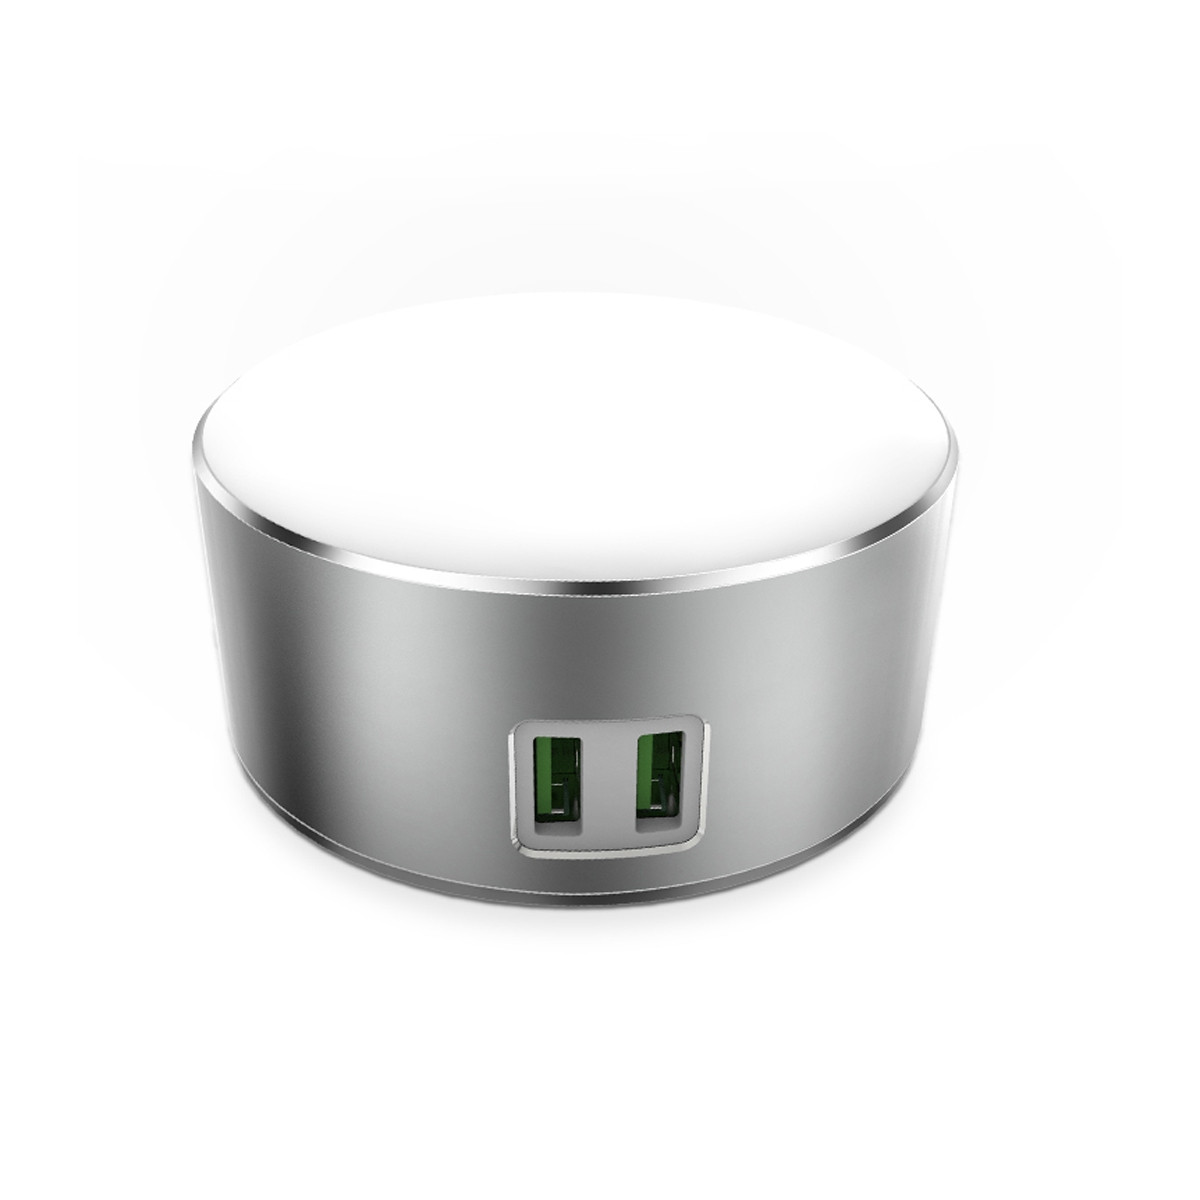 Punjač LDNIO USB Charger 2 Ports 5V/2.4A 12W with LED Lamp Silver